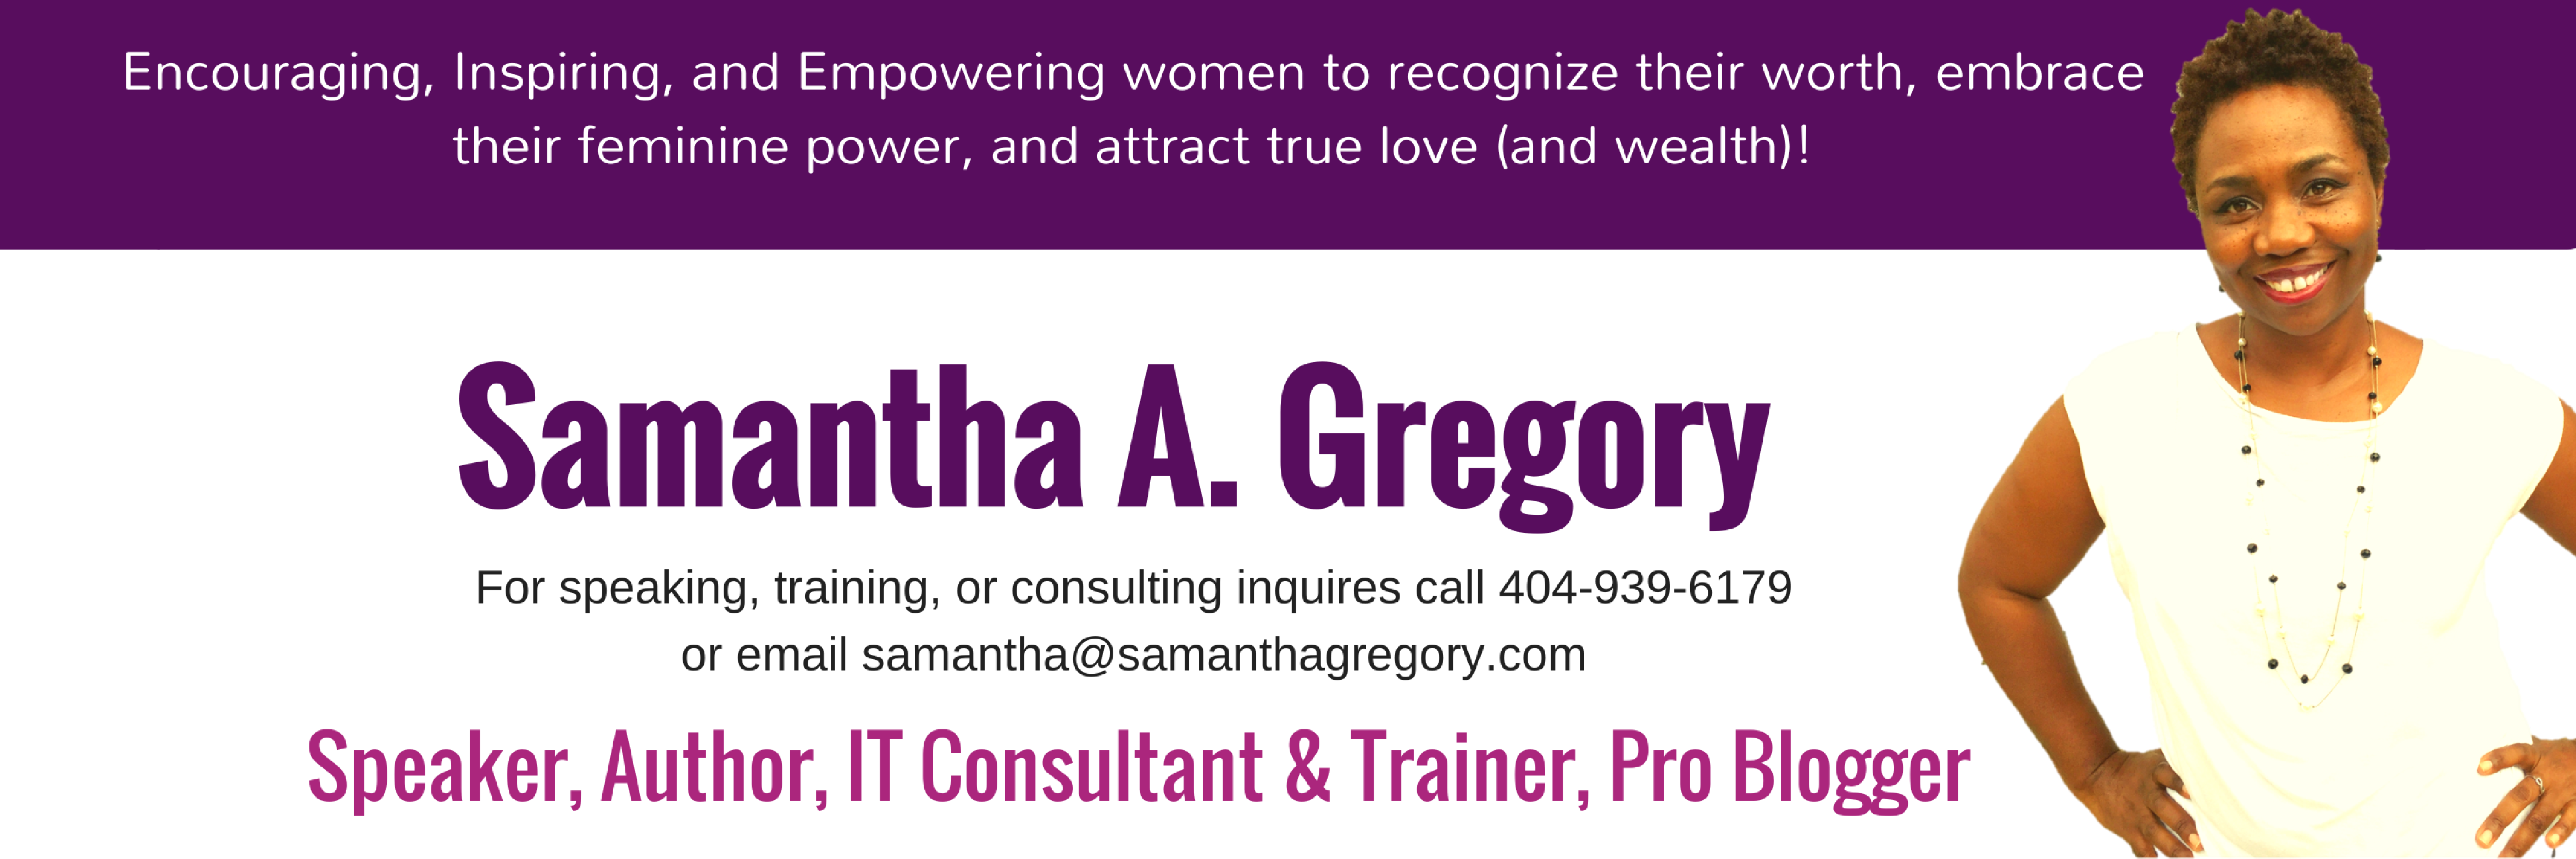 SamanthaGregory.com speaker, author, IT consultant & trainer, pro blogger